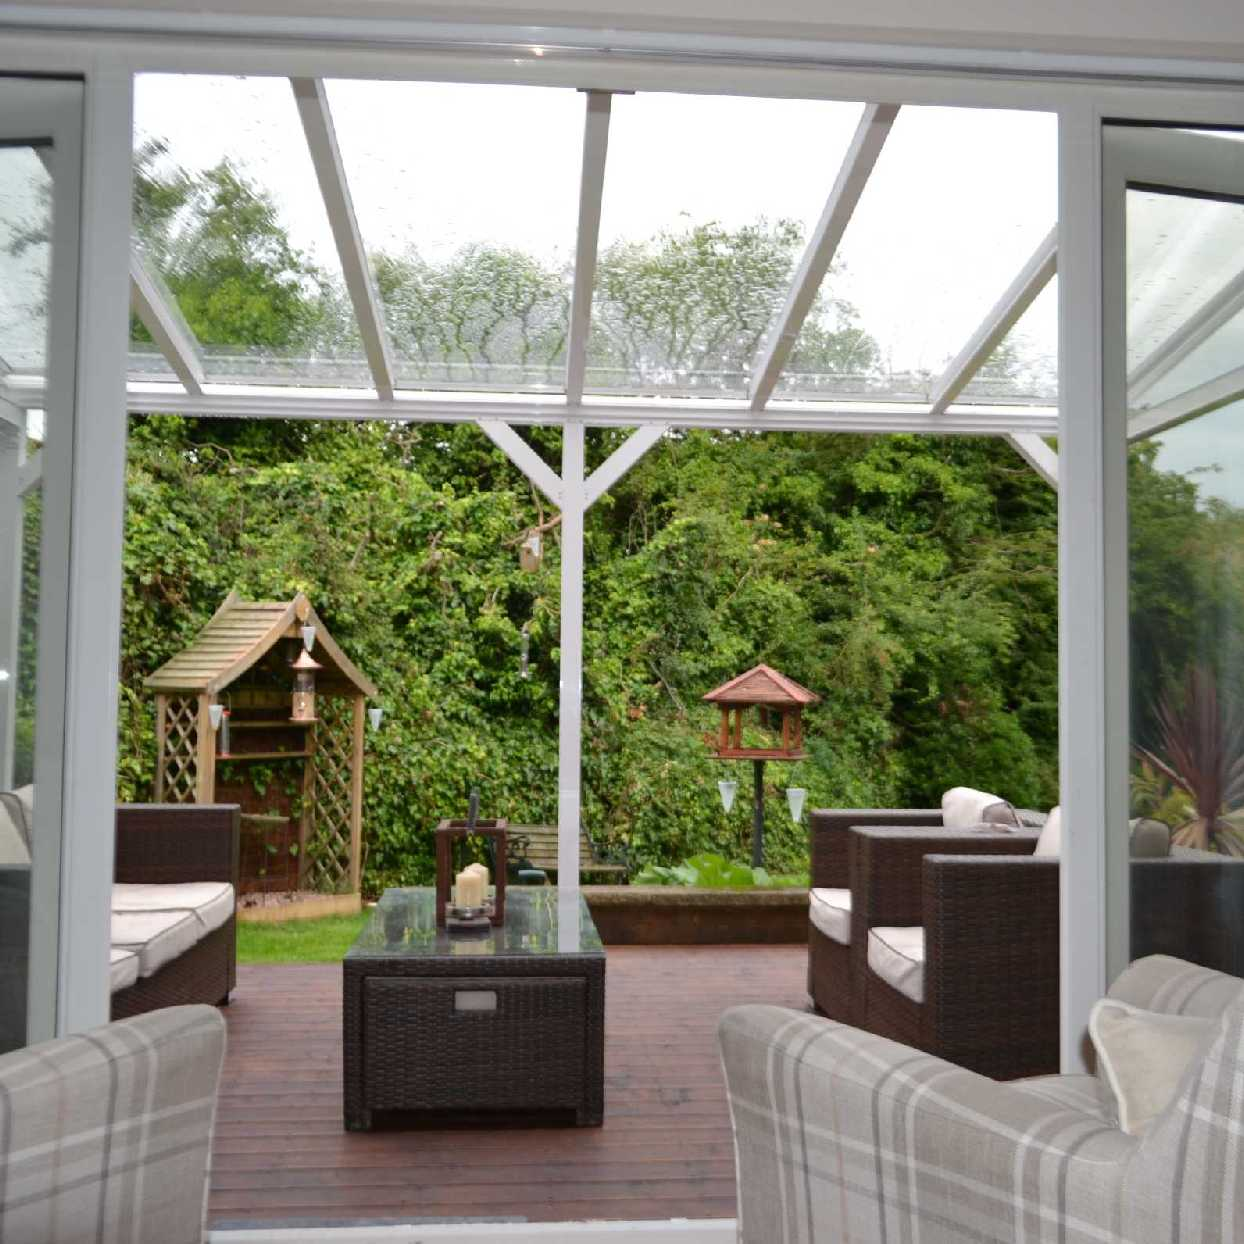 Great selection of Omega Smart Lean-To Canopy UNGLAZED for 6mm Glazing - 6.3m (W) x 2.5m (P), (4) Supporting Posts